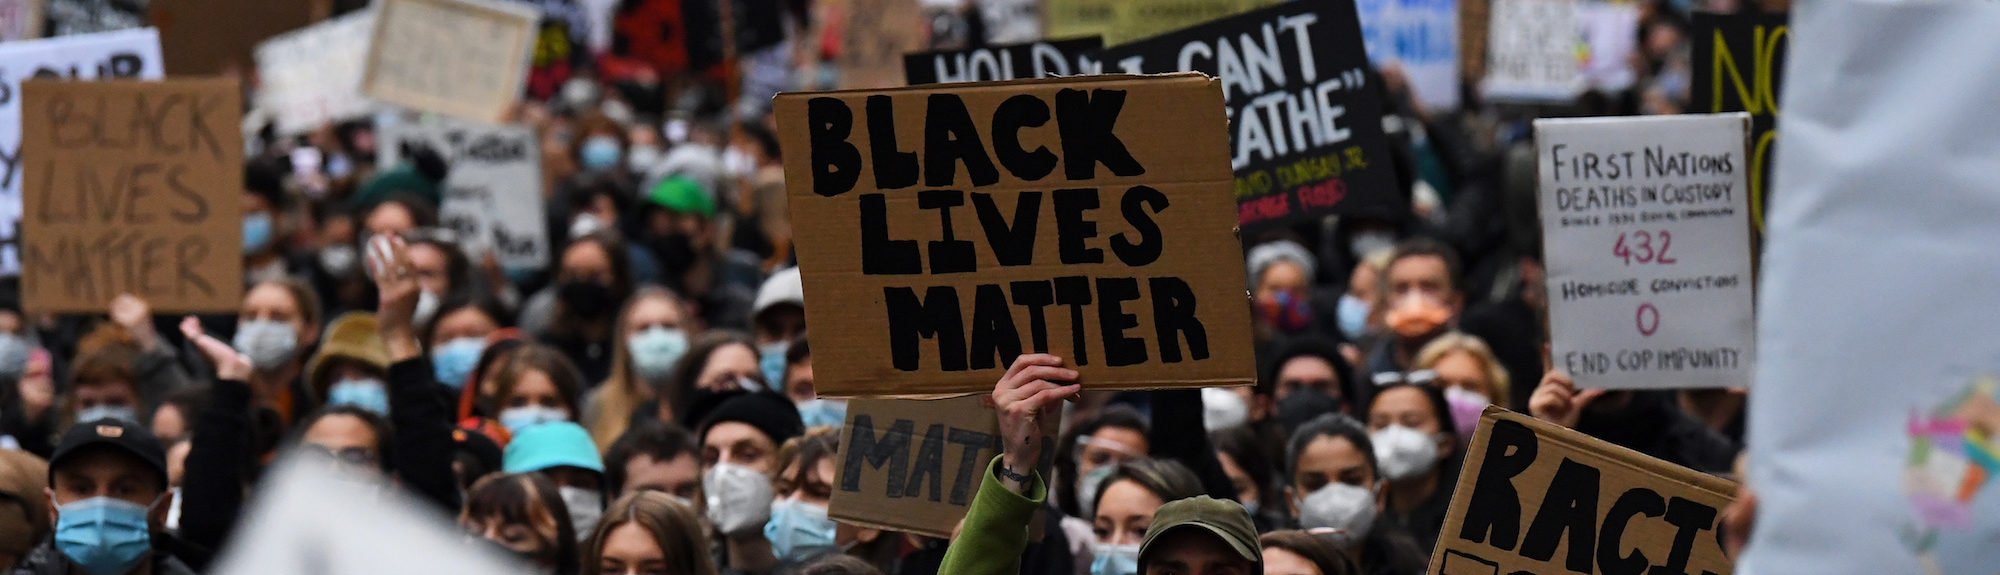 Black Lives Matter rally in Melbourne, (AAP Image/James Ross)